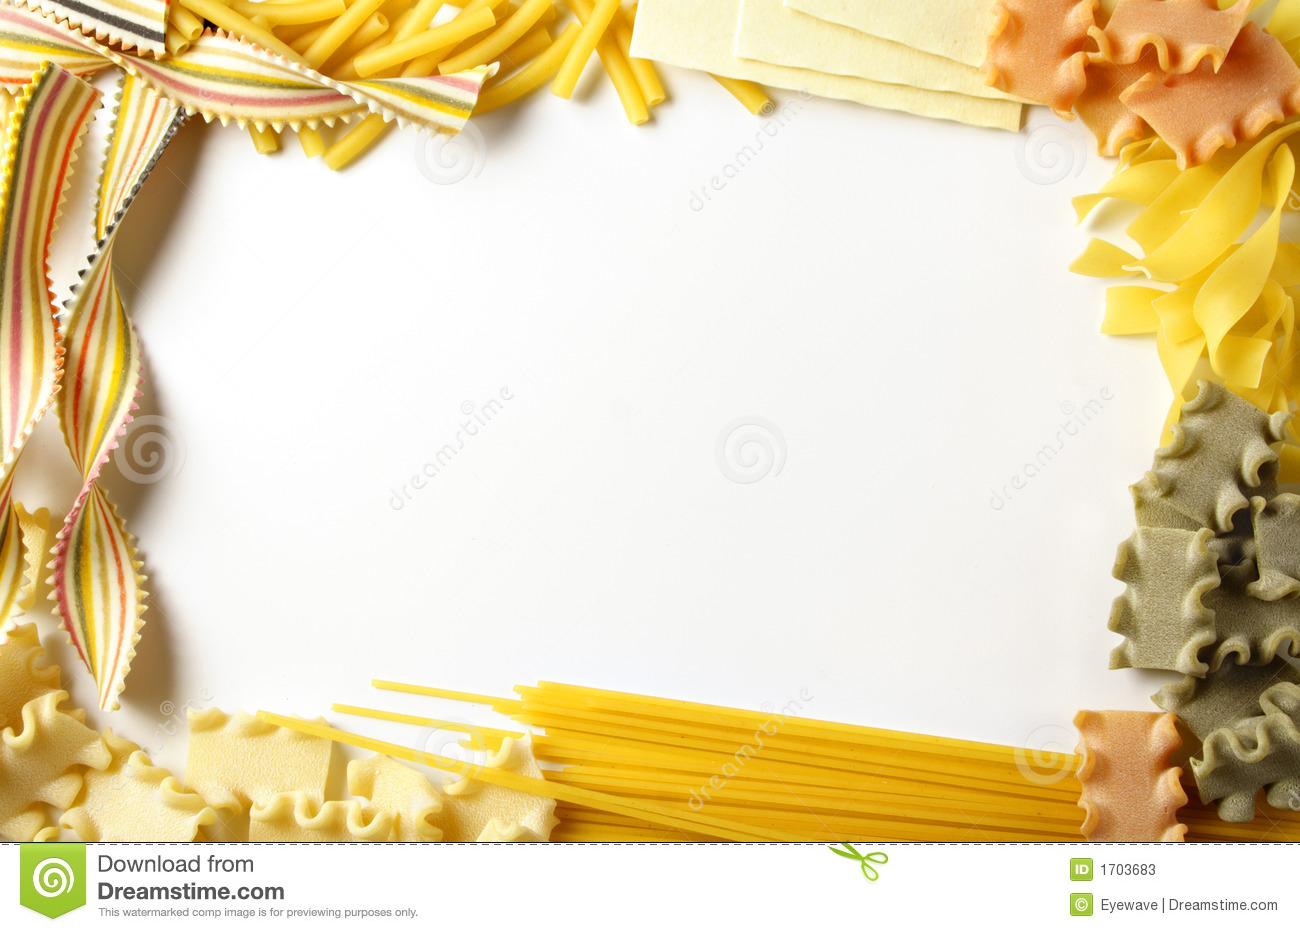 Pasta Border Stock Photos  Image: 1703683